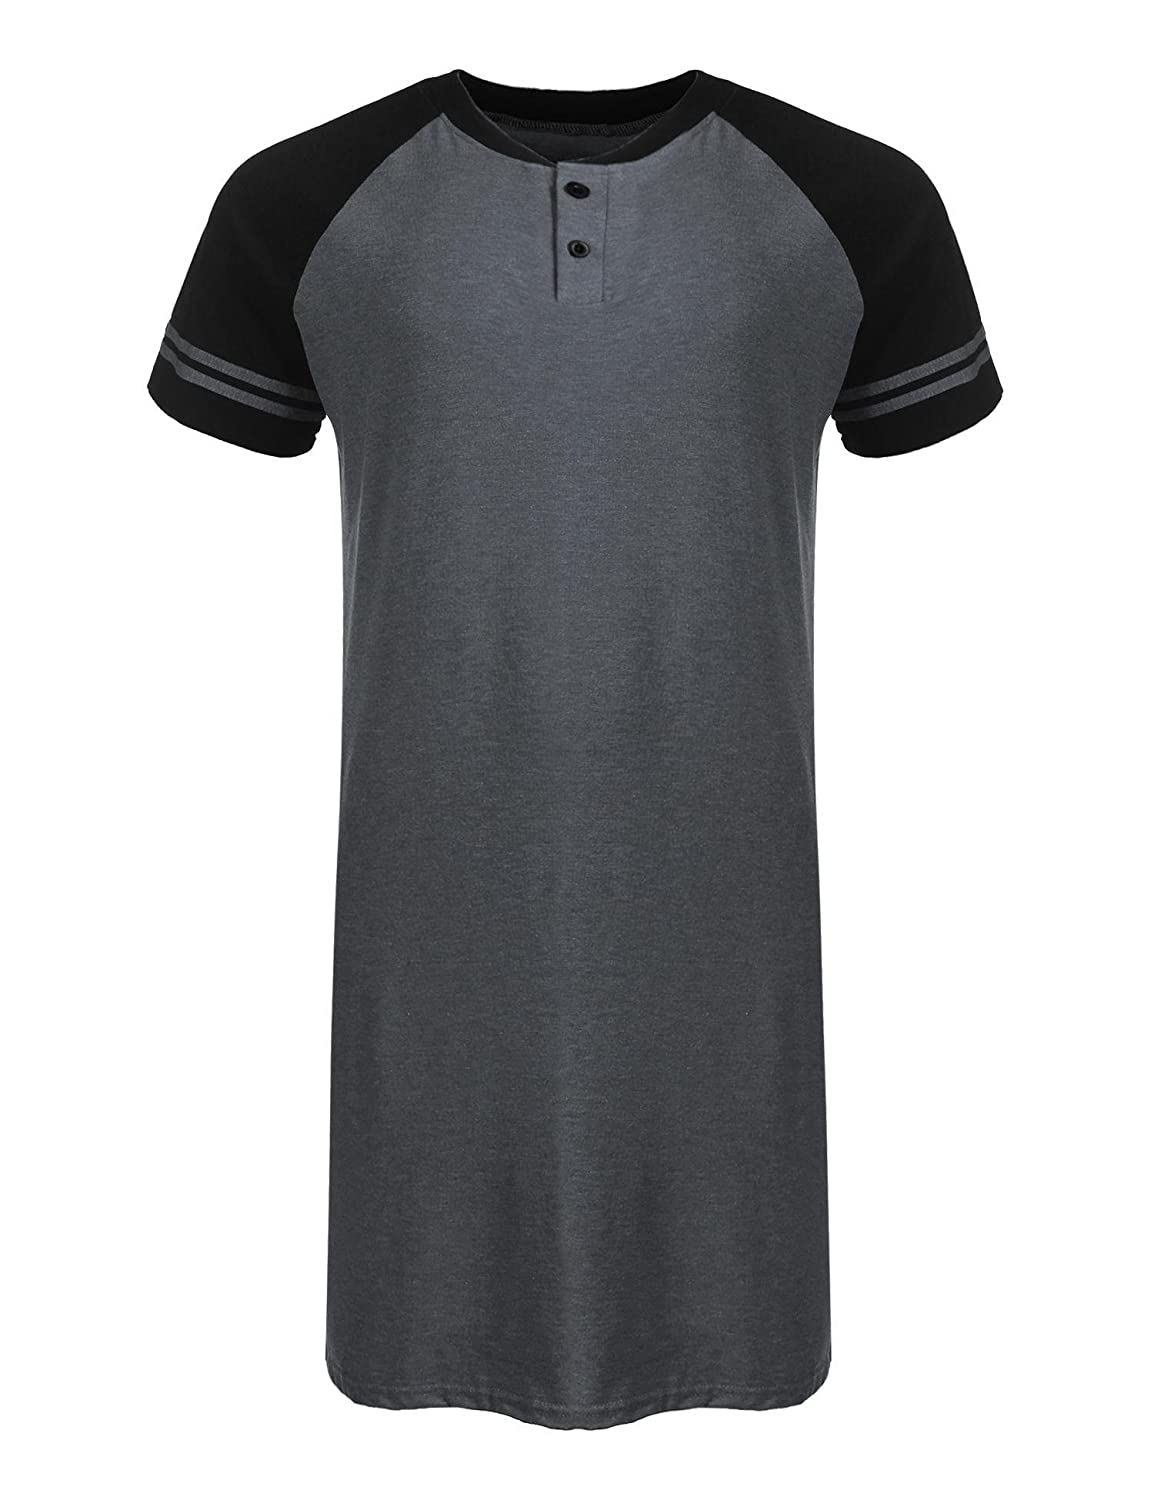 Kisshes Mens Cotton Nightshirt Summer Henley Night Shirt Short Sleeve Nightgown with Buttons Black Navy Blue